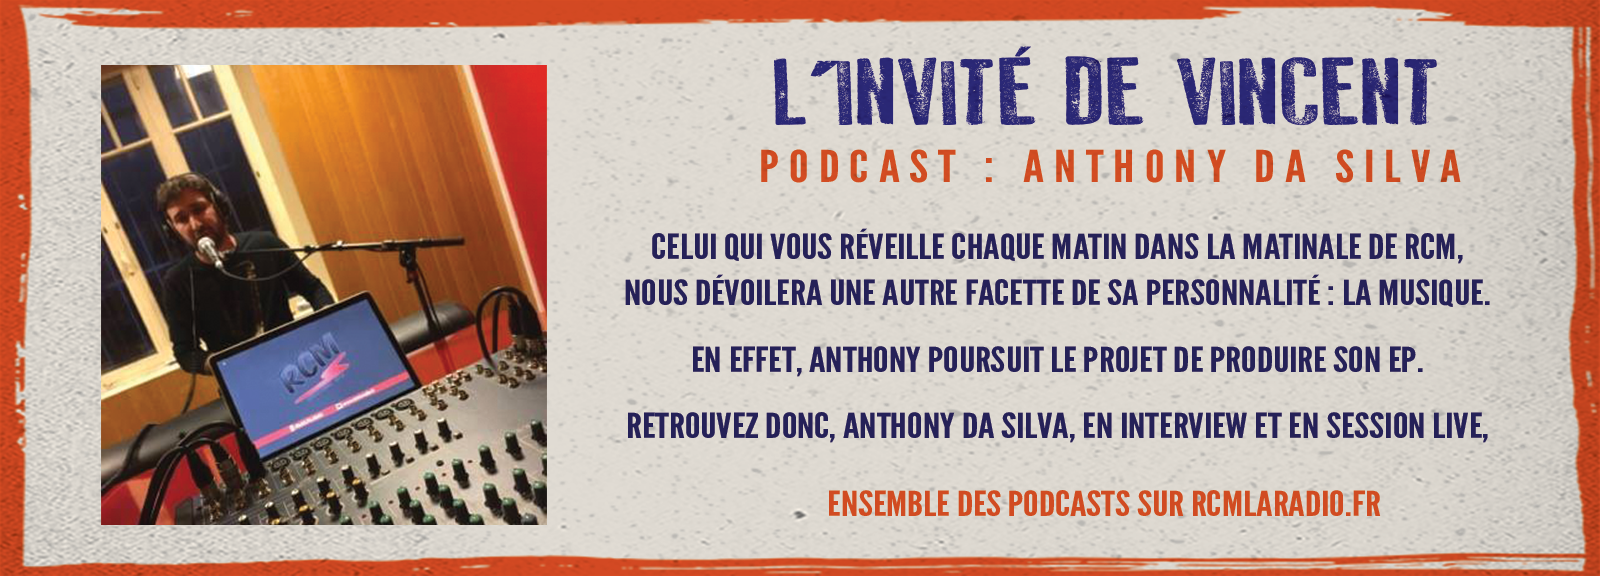 anthony-interview-cagnote